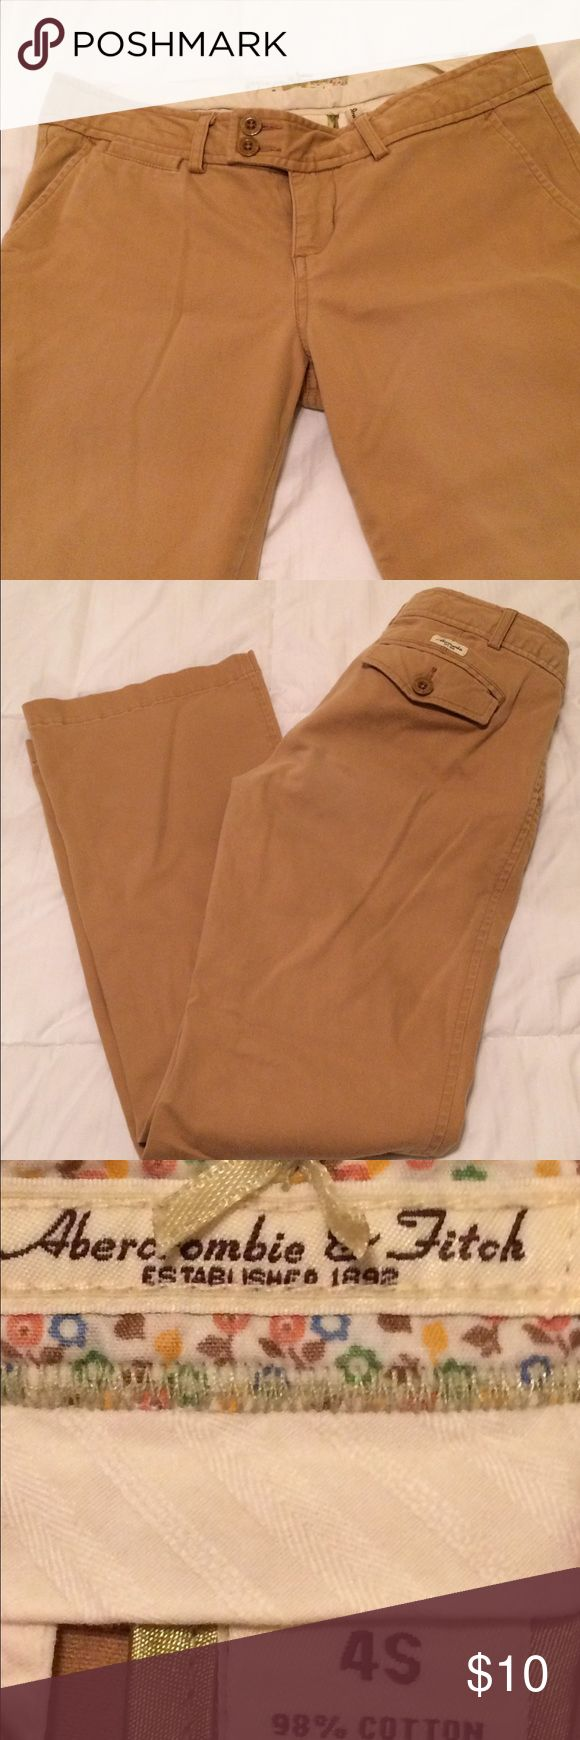 Abercrombie and Fitch Khakis Abercrombie and Fitch Khakis Abercrombie & Fitch Pants Trousers